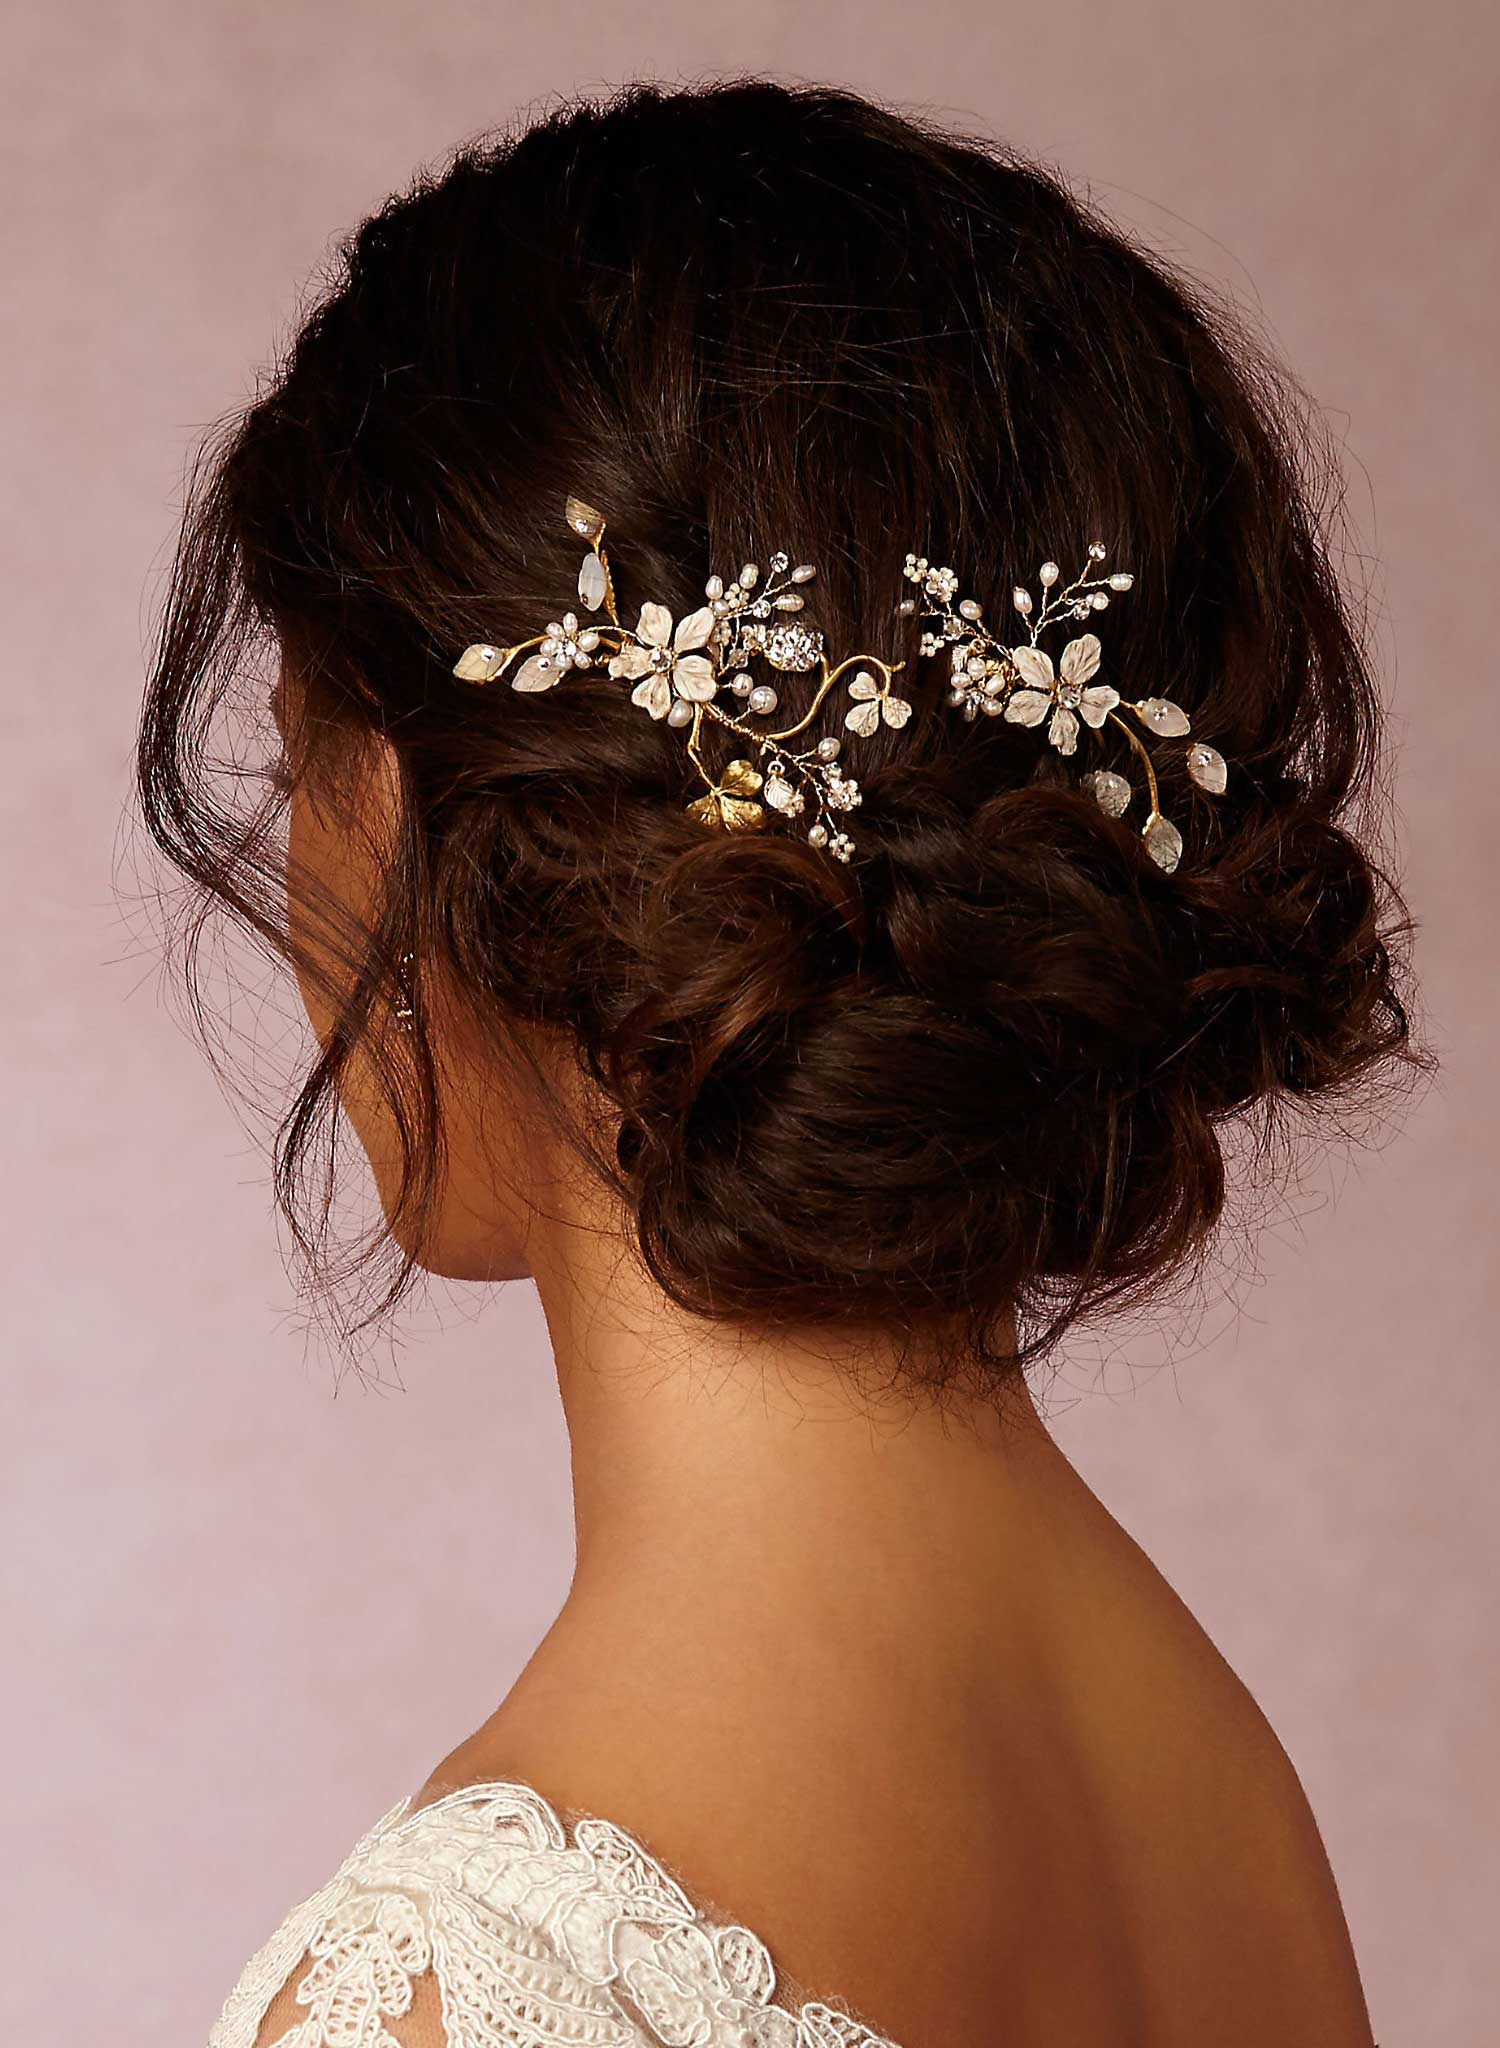 headpieces - bridal headpieces, special occasion headpieces | twigs